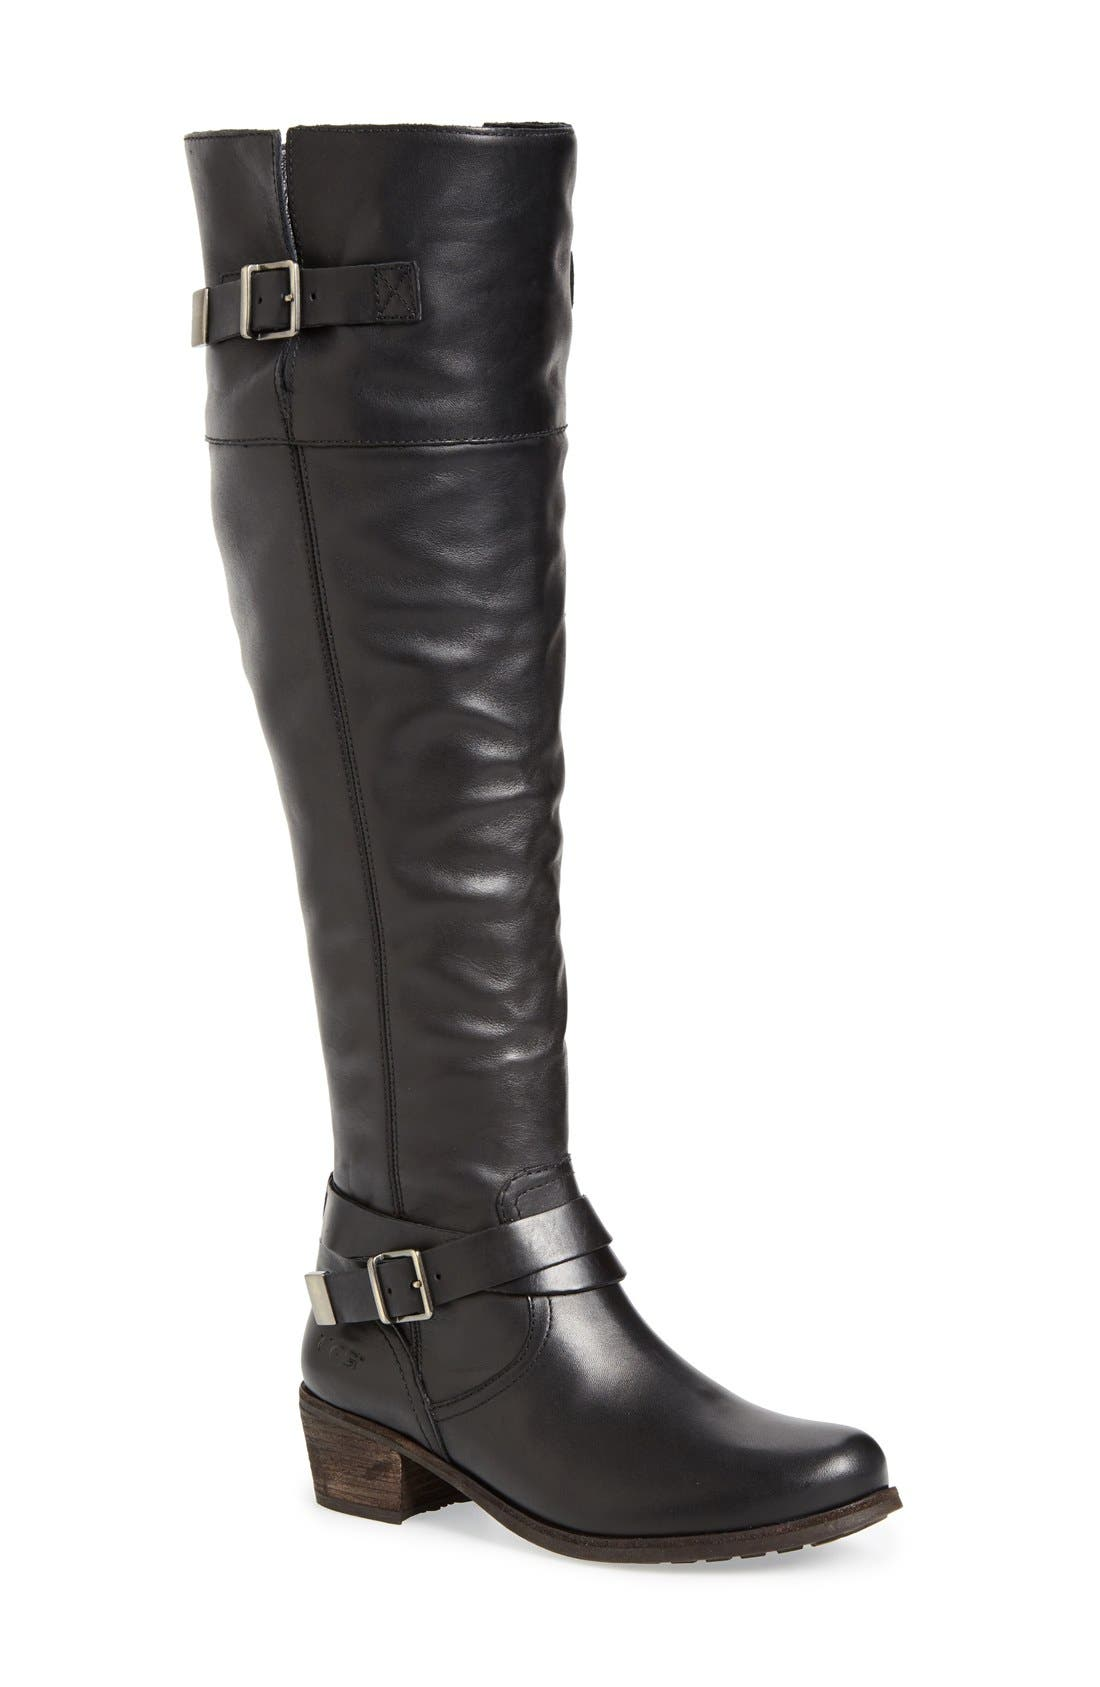 Alternate Image 1 Selected - UGG® 'Bess' Over the Knee Boot (Women)